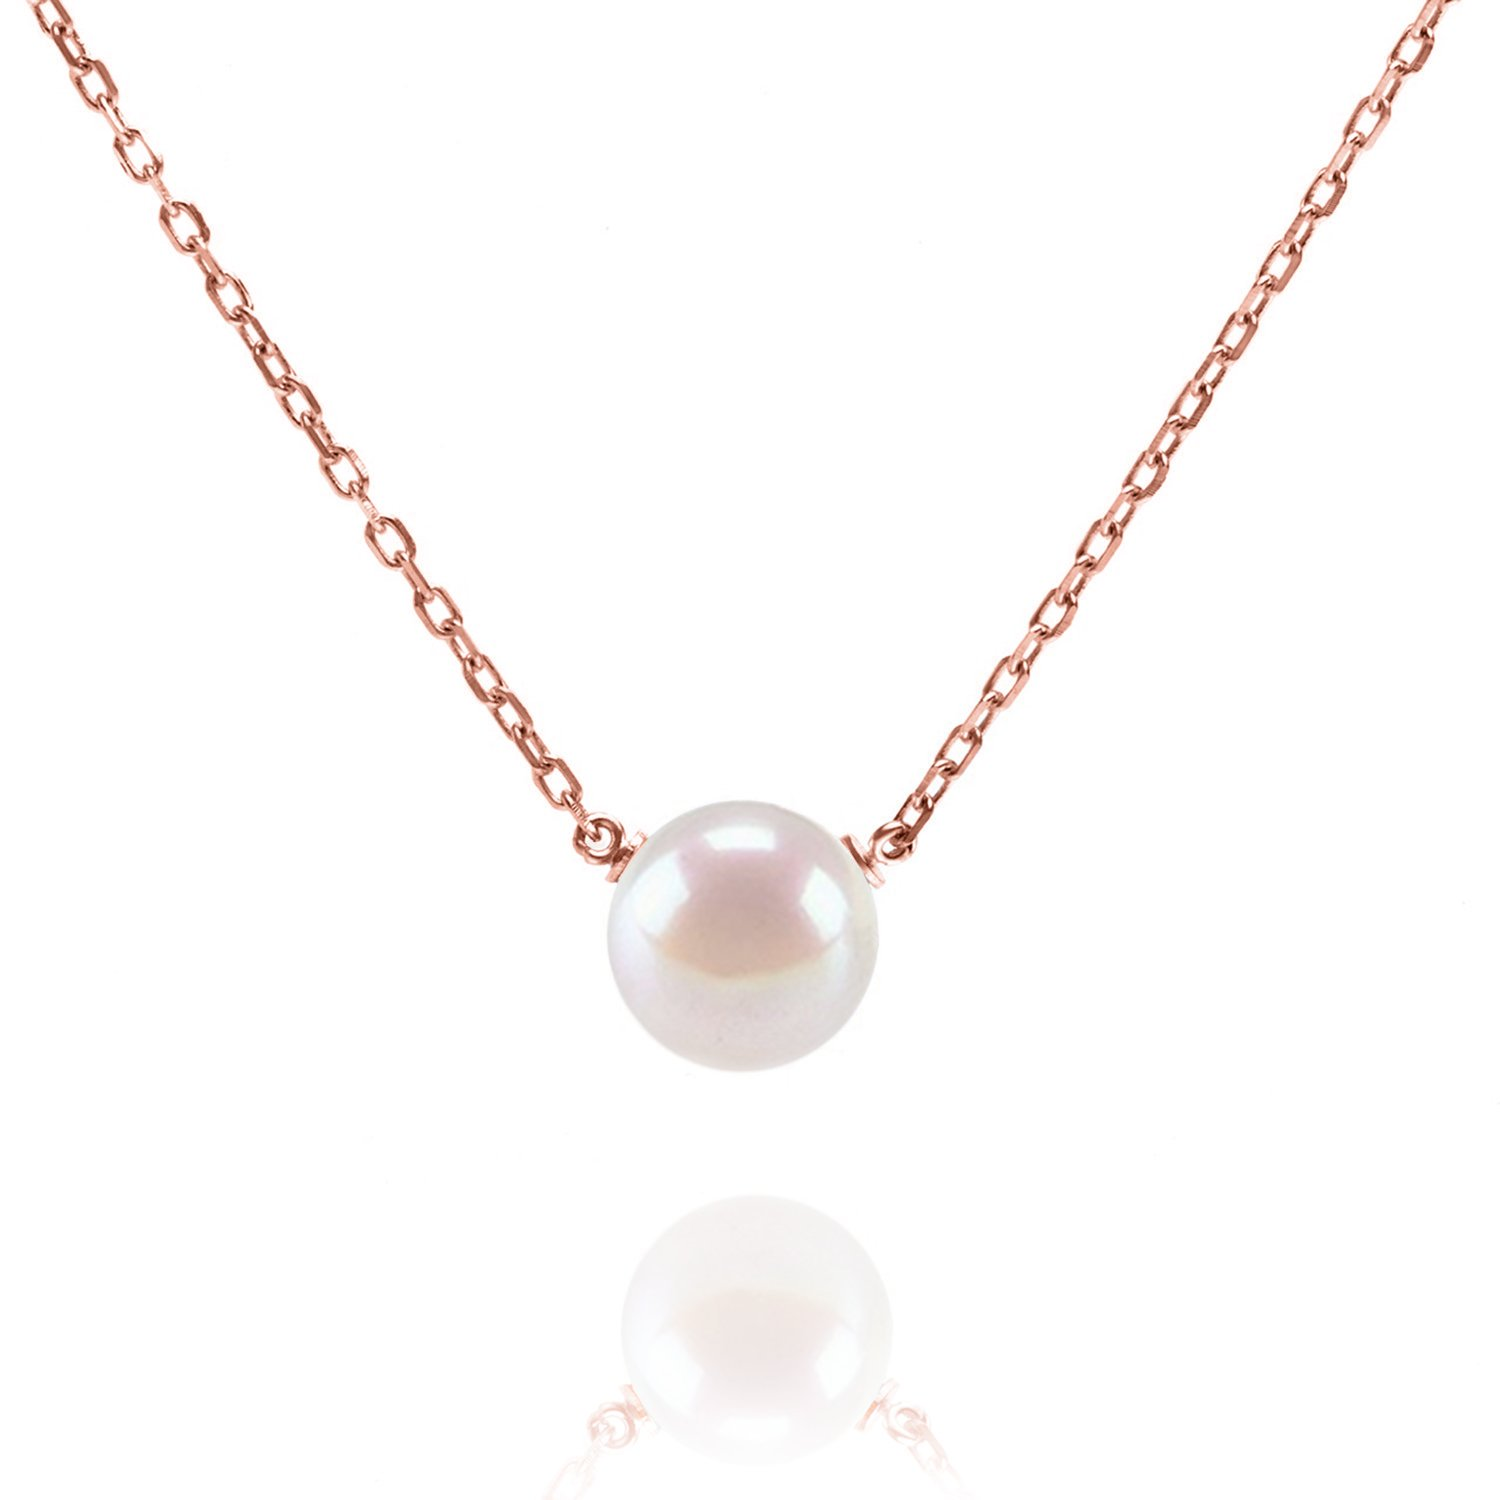 59f81471a86d7 PAVOI Handpicked AAA+ Freshwater Cultured Single Pearl Necklace Pendant |  Gold Necklaces for Women